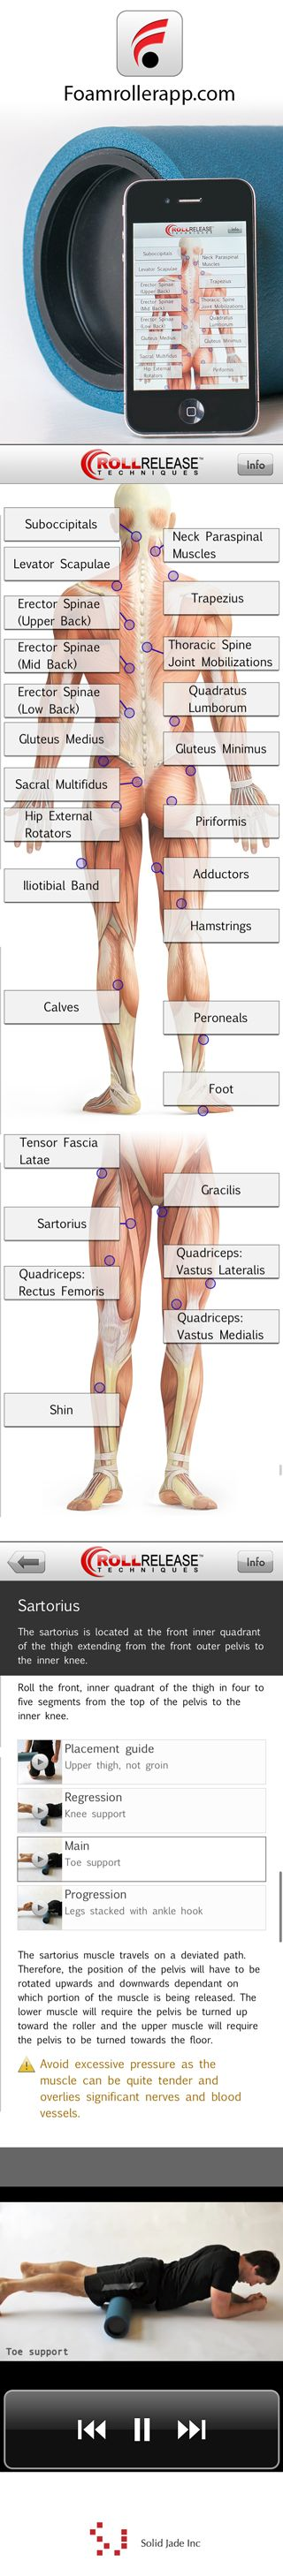 77 best images about a&p on pinterest | foot anatomy, muscle, Muscles